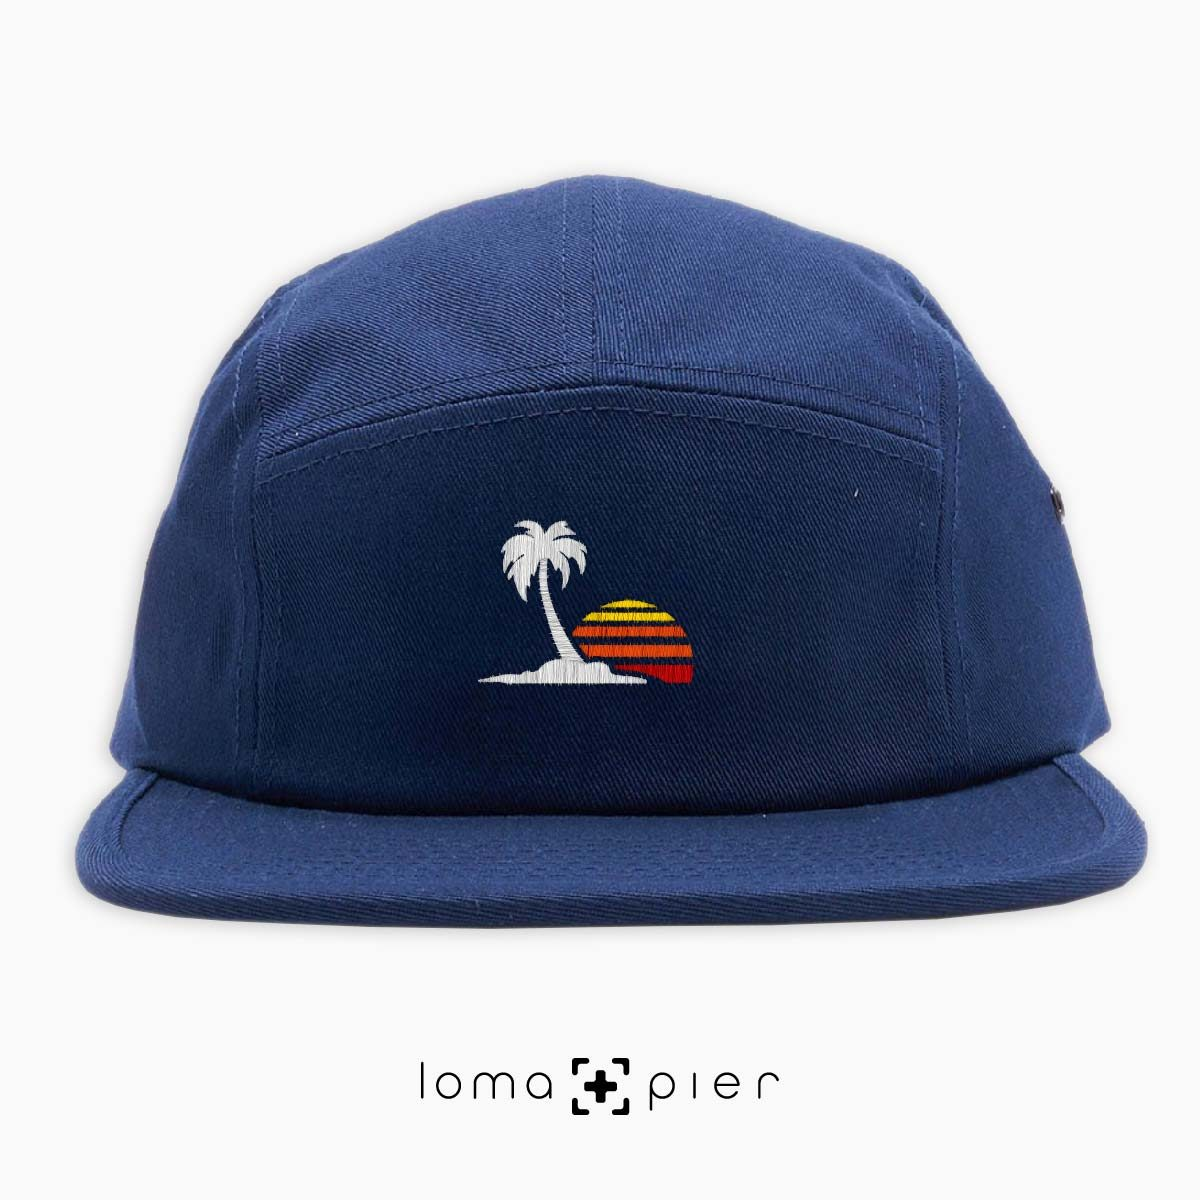 VENICE VIBES icon embroidered on a navy blue cotton 5-panel hat with multicolor thread by loma+pier hat store